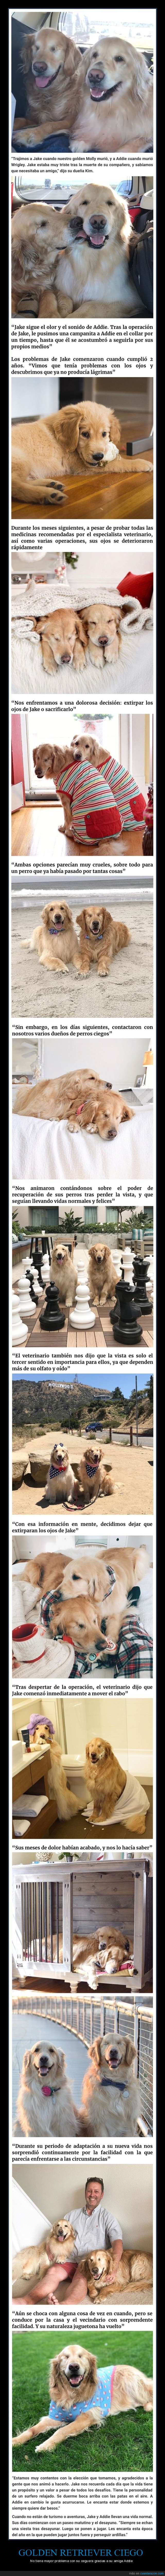 ciego,golden retriever,perros